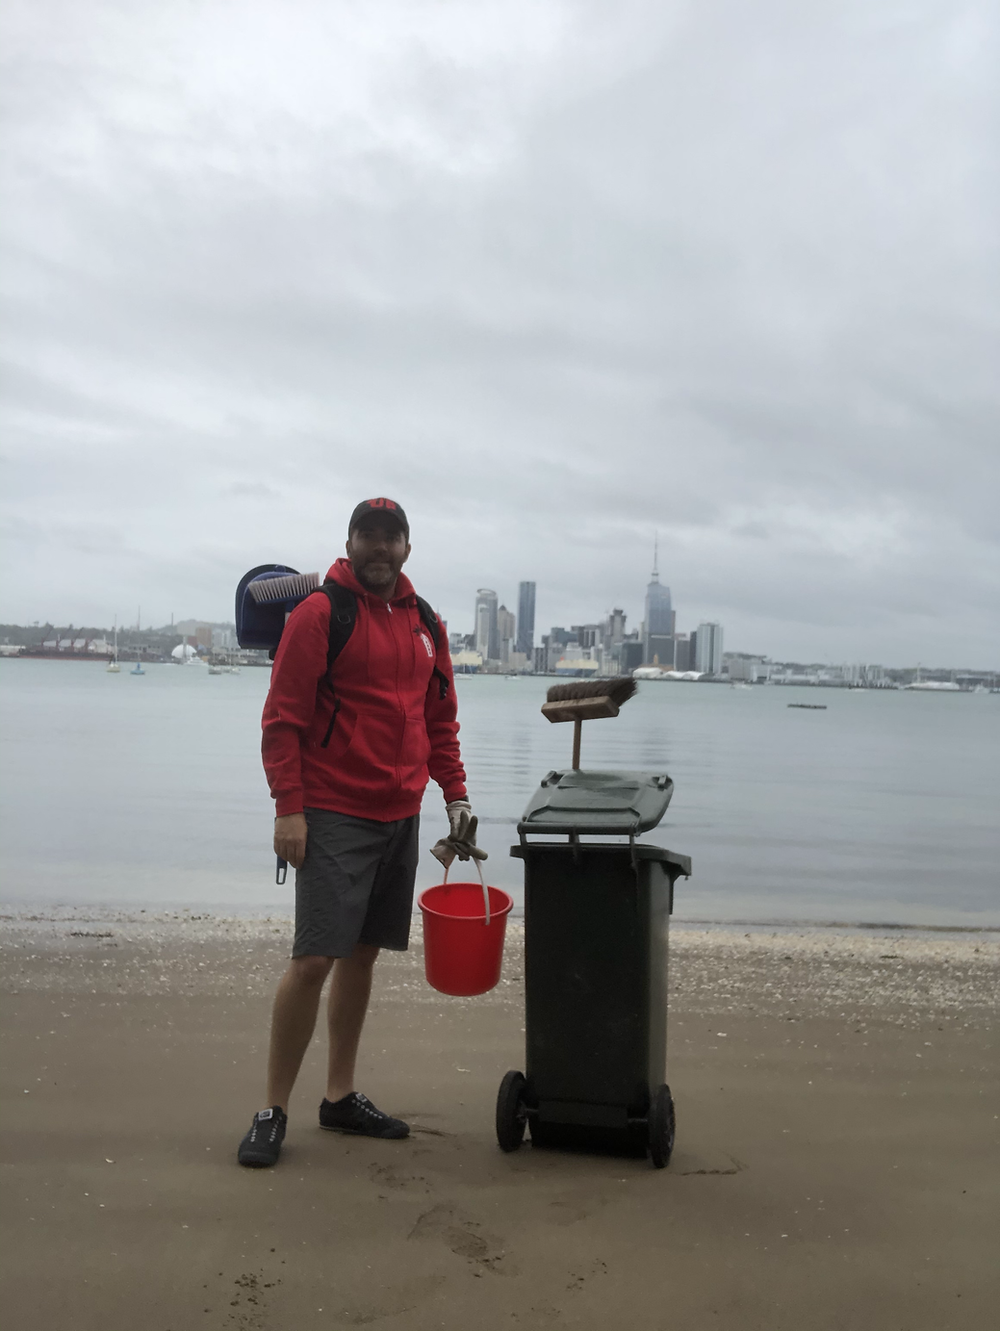 Aston, the single Stack member in New Zealand stands by a trash can on the beach. He is happy with his cleanup.